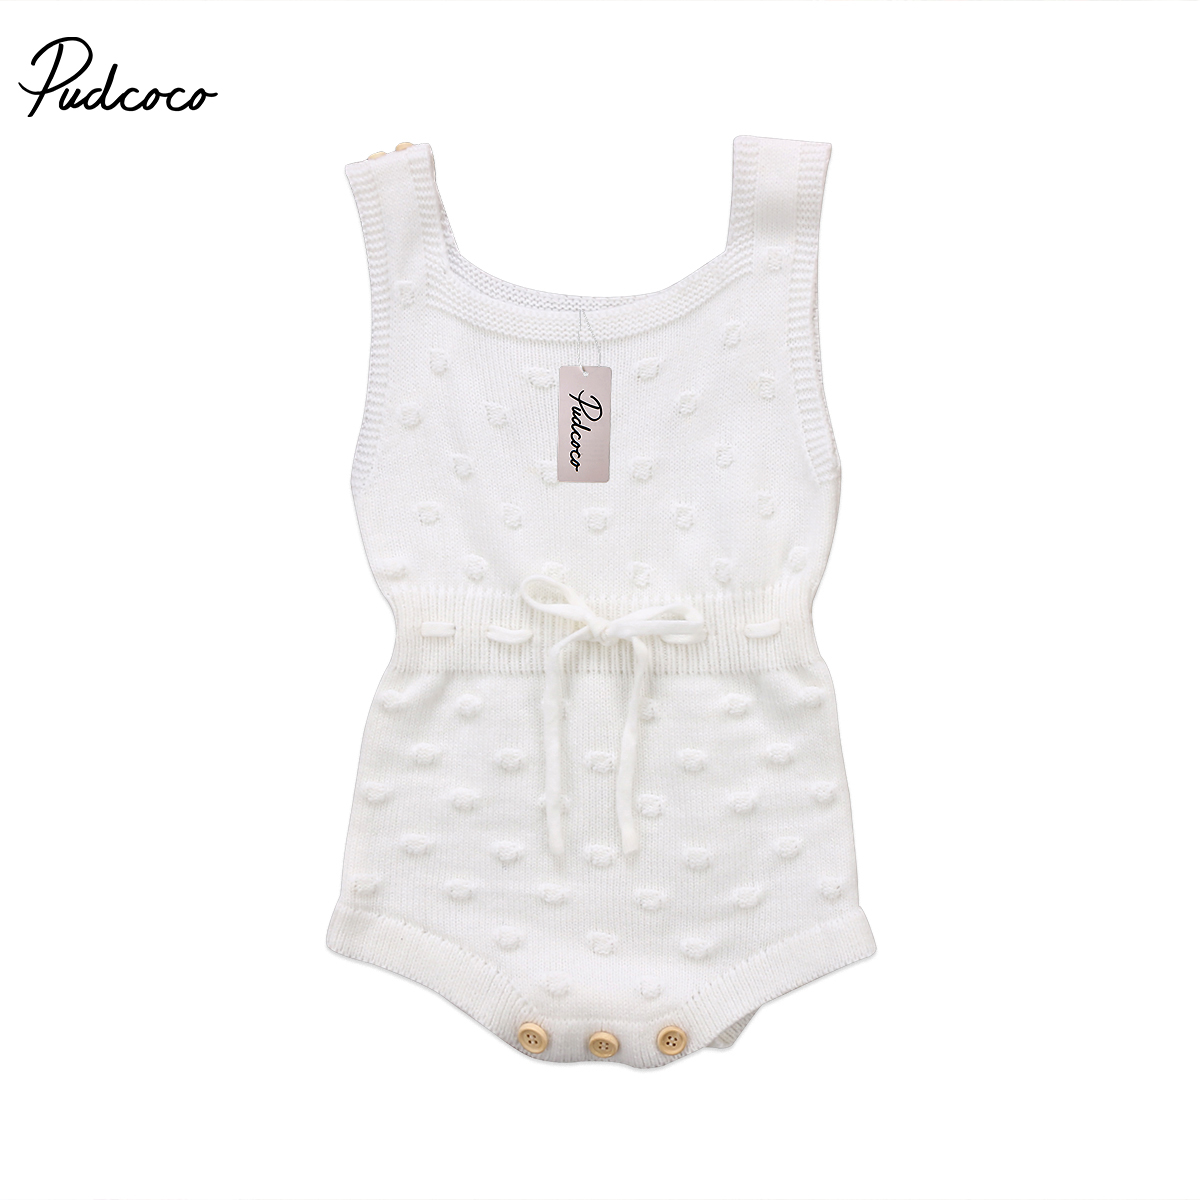 New 2018 Newborn Baby Girl Sleeveless Sleeveless Jumpsuit Knitted   Romper   Outfit Clothes 0-2T